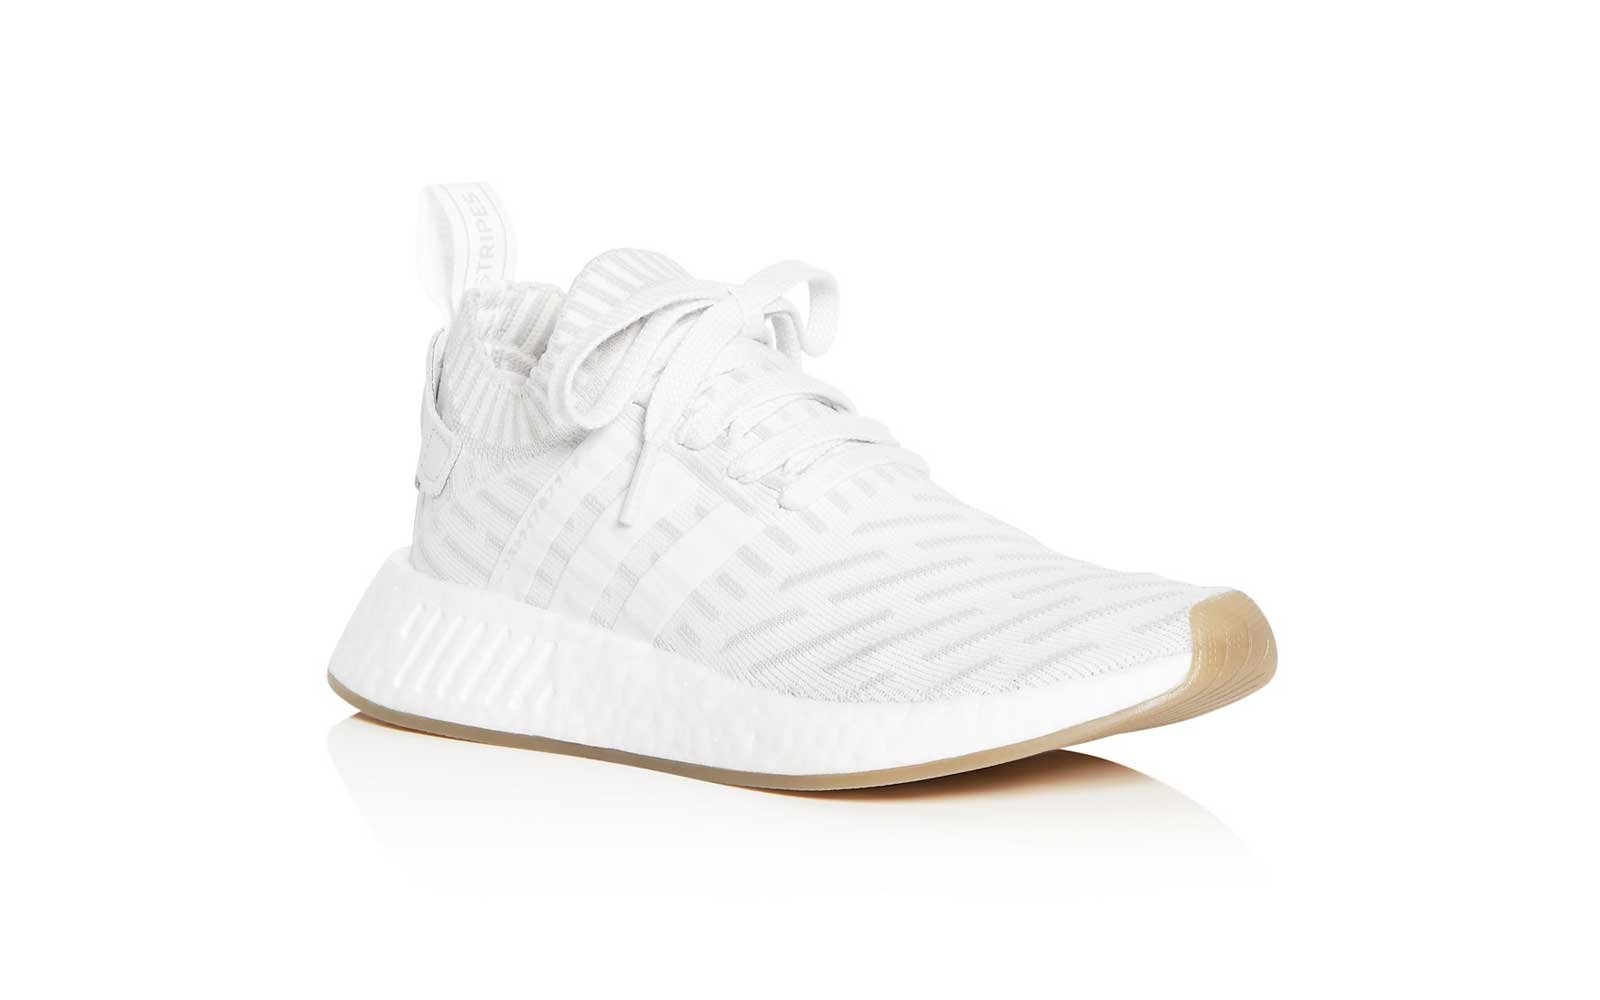 70d5ab512 For the Street Smart  Adidas NMD R2 Knit Lace Up Sneakers. The Best Comfy  and Cute Sneakers